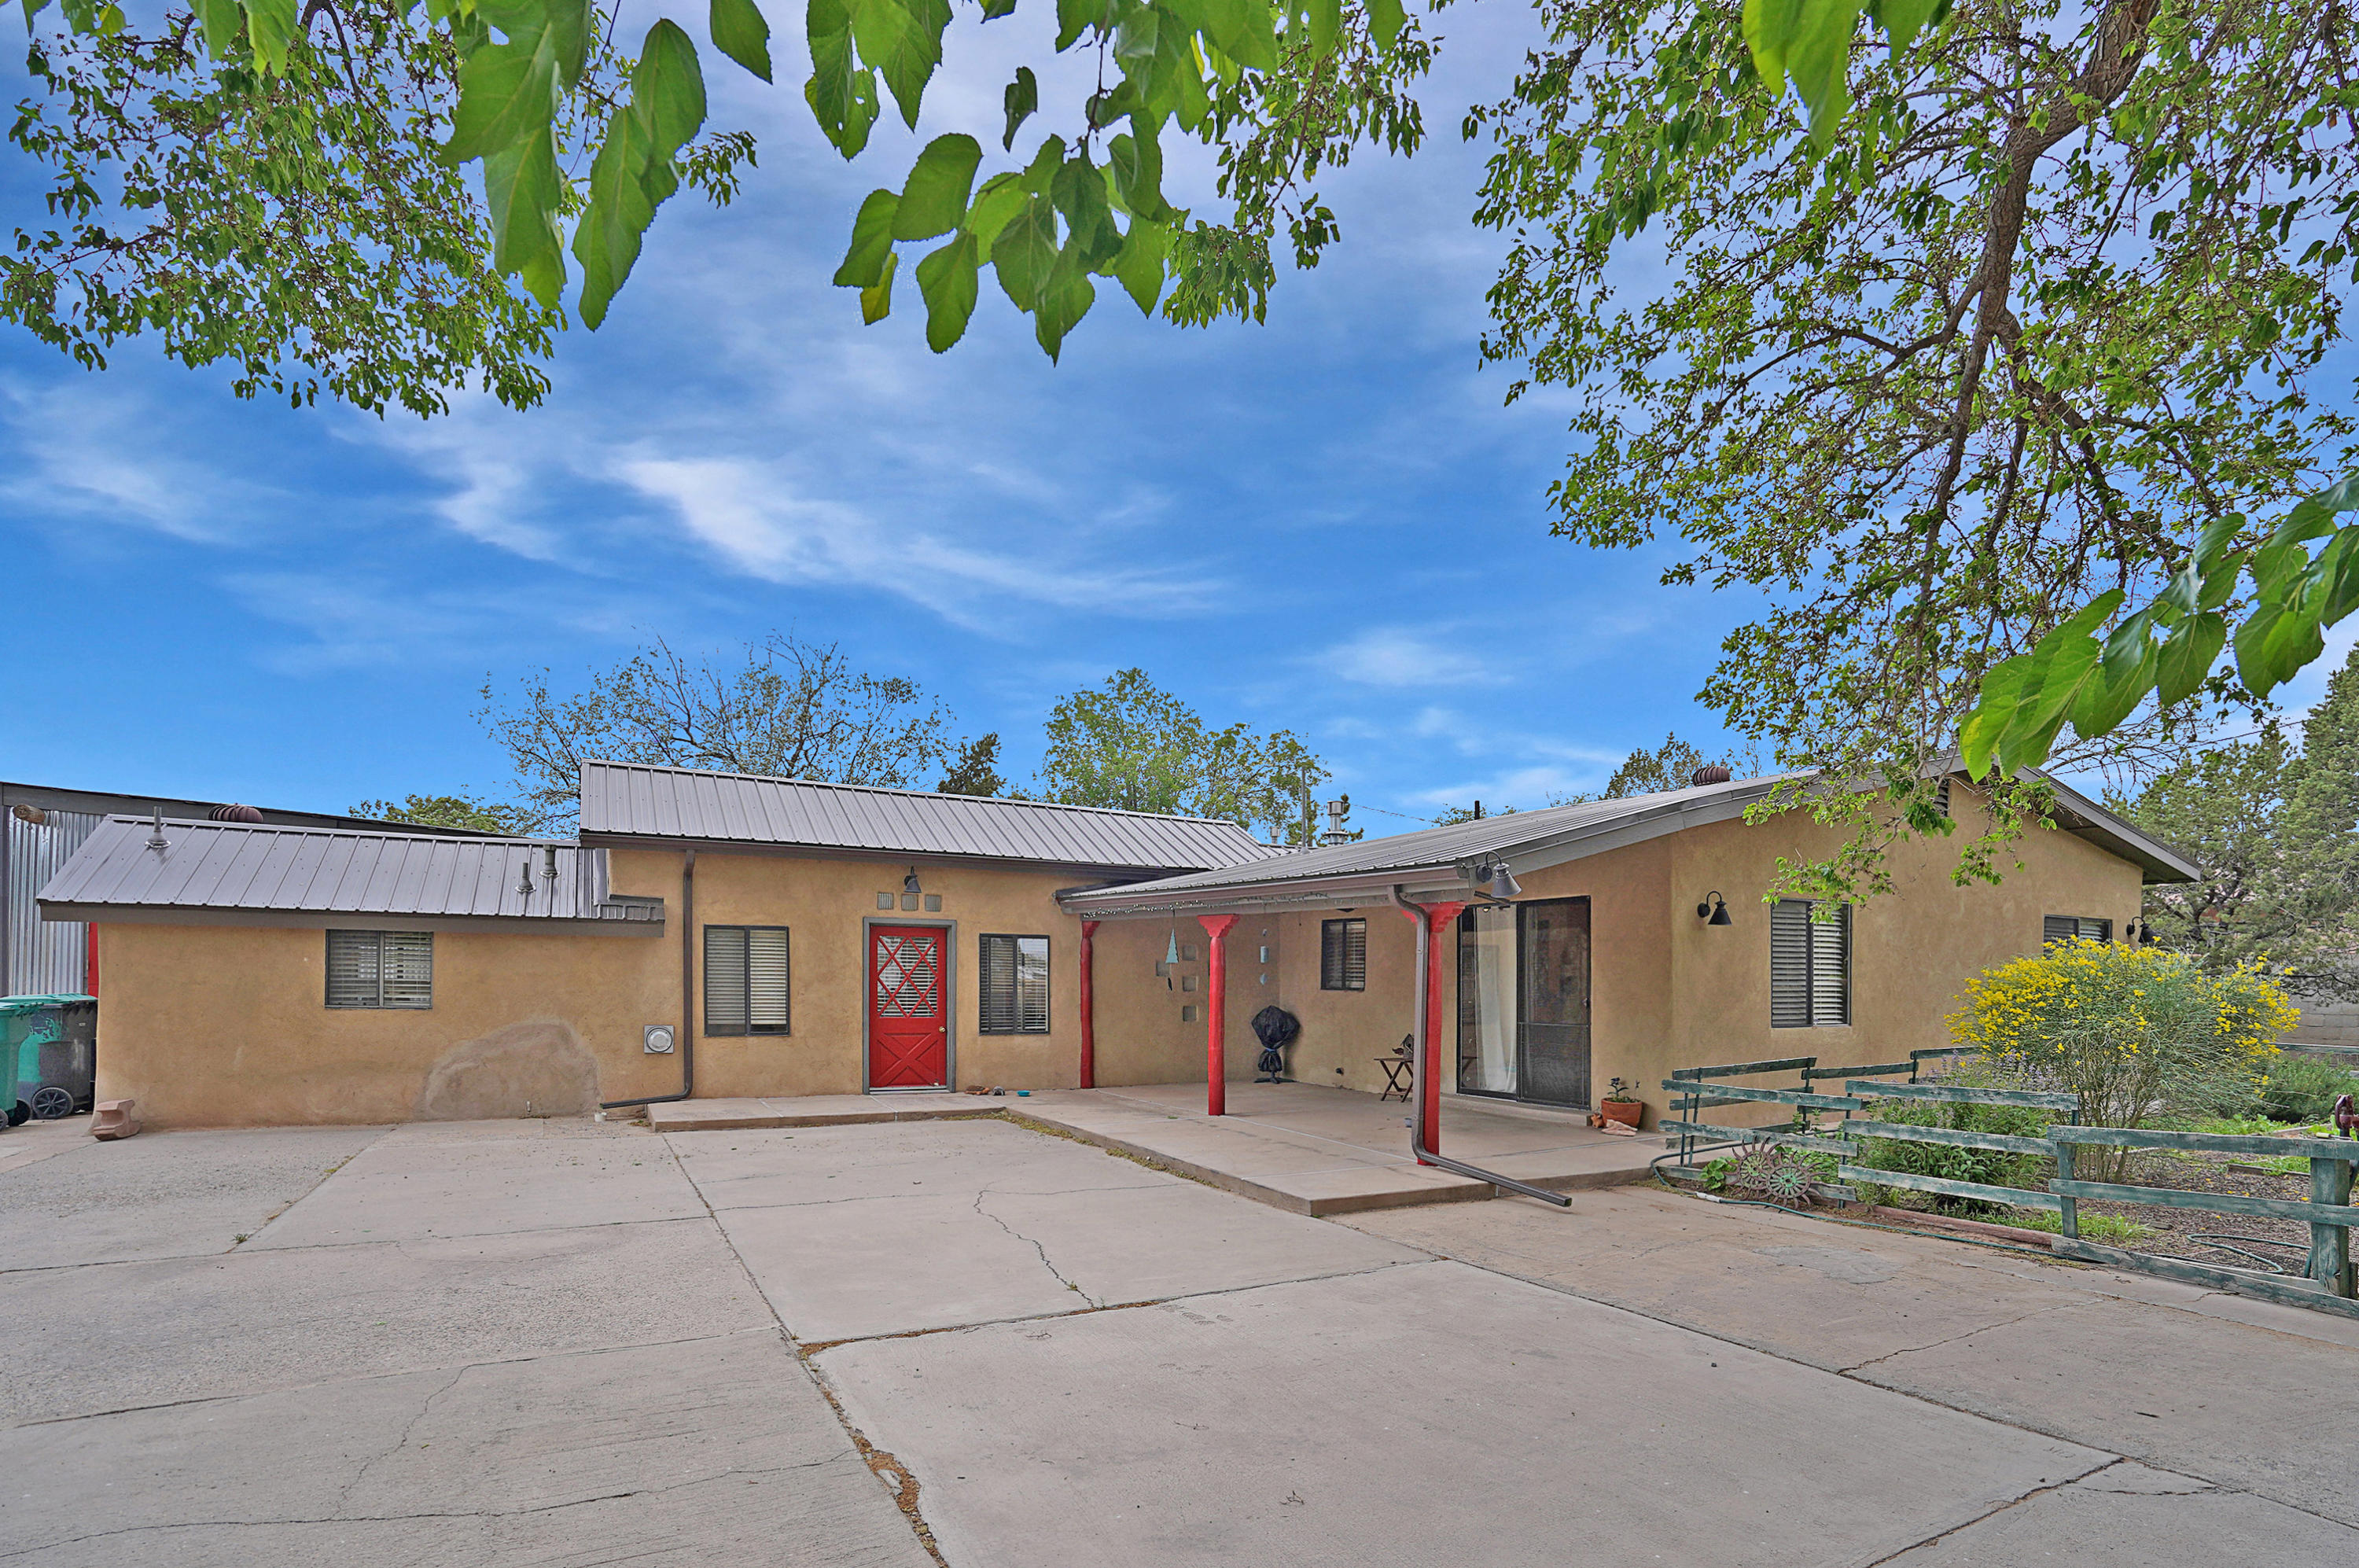 Discover this hidden gem in the heart of the North Valley! Enter the private road to a gated, secluded property with acreage and views! Plenty of space for horses and toys. The main house is surrounded by beautiful greenery. The kitchen has its own entrance and stainless steel appliances. The living area has artisan crafted designs with cove ceilings. Bathrooms are spacious and service room is huge! Barn/Garage has plenty of space for vehicles and tools. The private courtyard is perfect for retreating and enjoying the gentle summer breeze. Rest under the covered patio of the separate casita which features its own full kitchen and garden tub! Property has Irrigation Rights from MRGCD